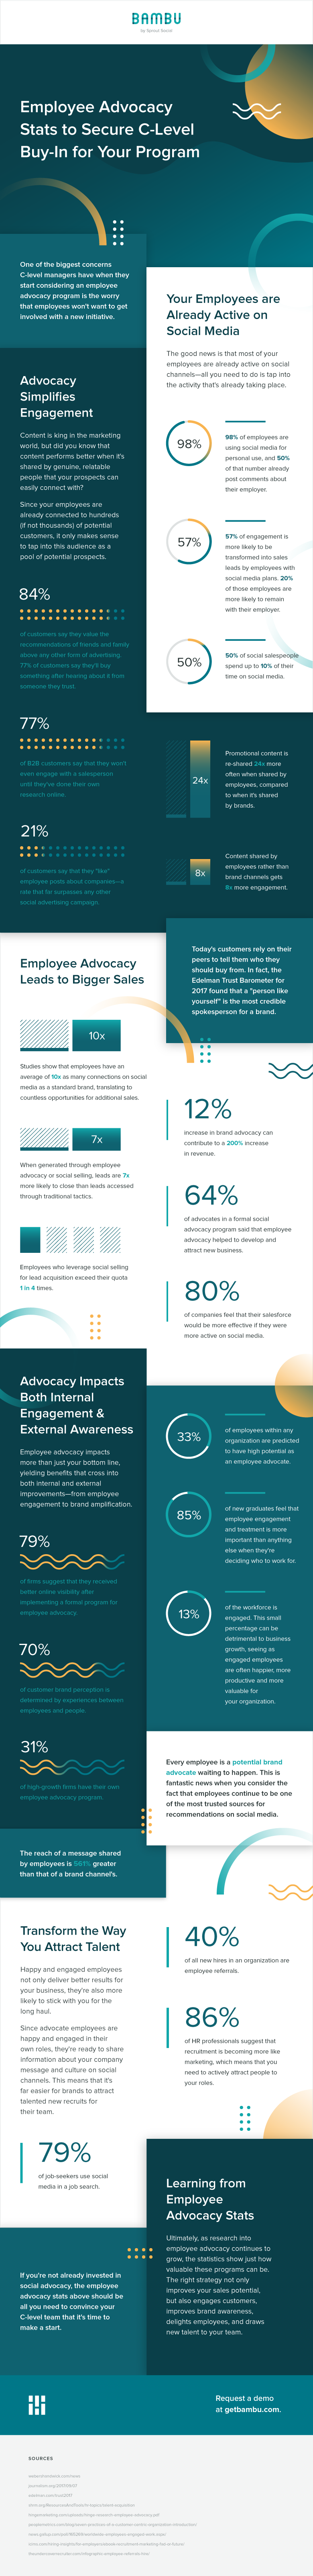 employee advocacy stats